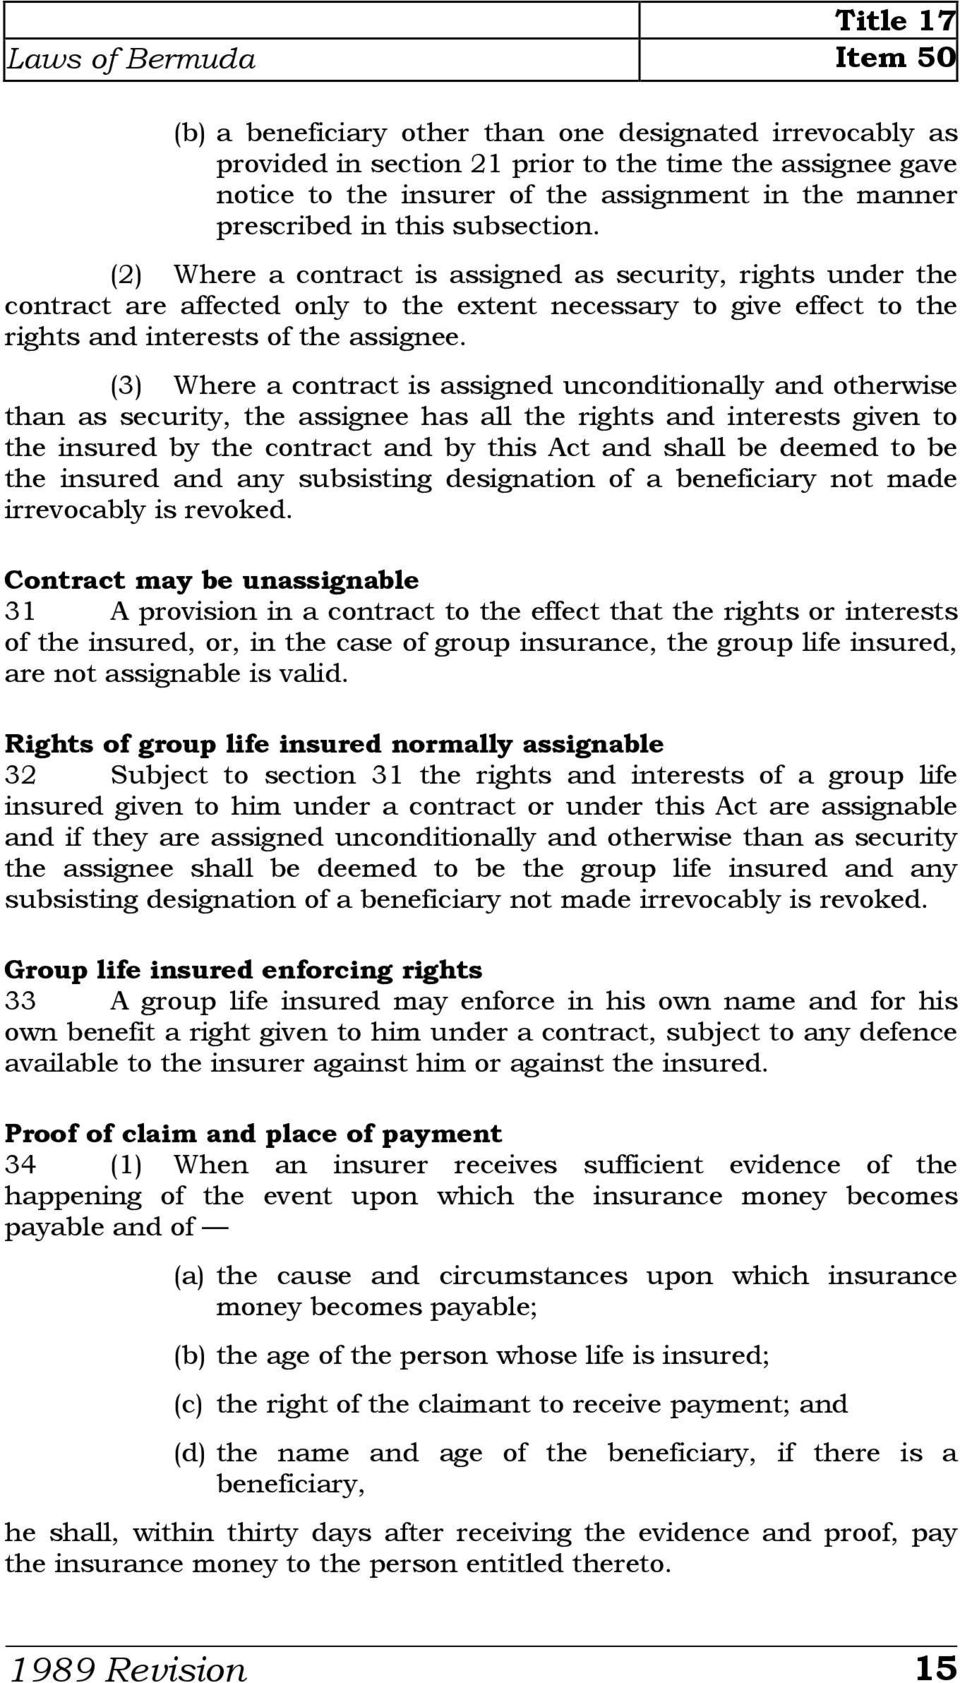 (2) Where a contract is assigned as security, rights under the contract are affected only to the extent necessary to give effect to the rights and interests of the assignee.